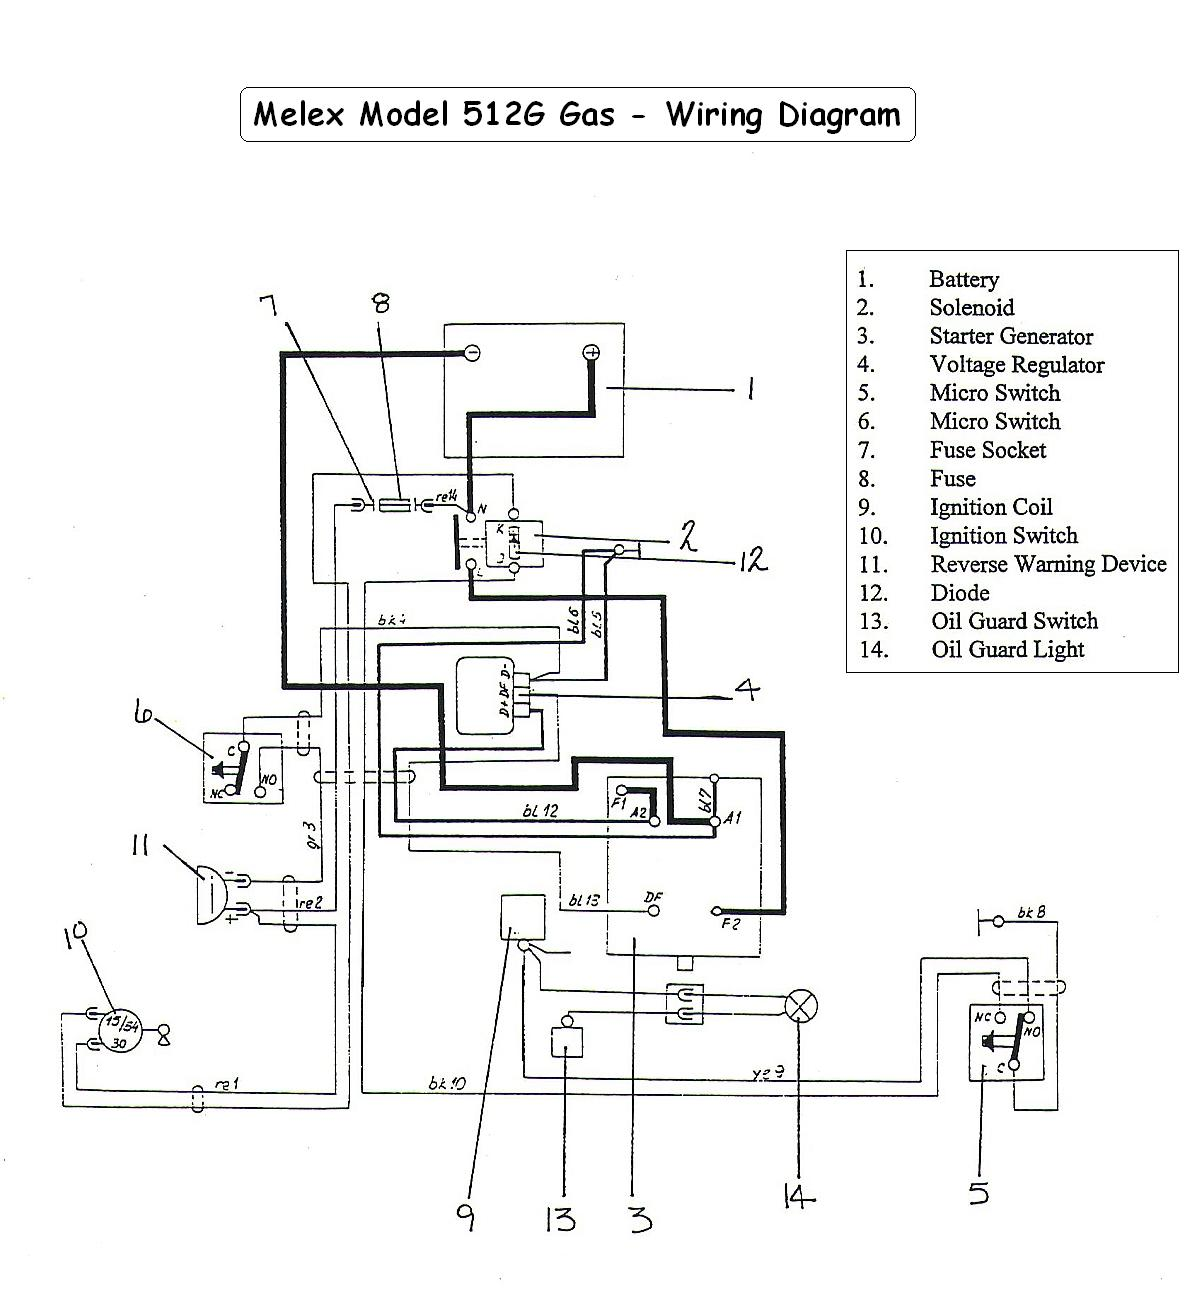 98 ez go gas wiring diagram  98  get free image about